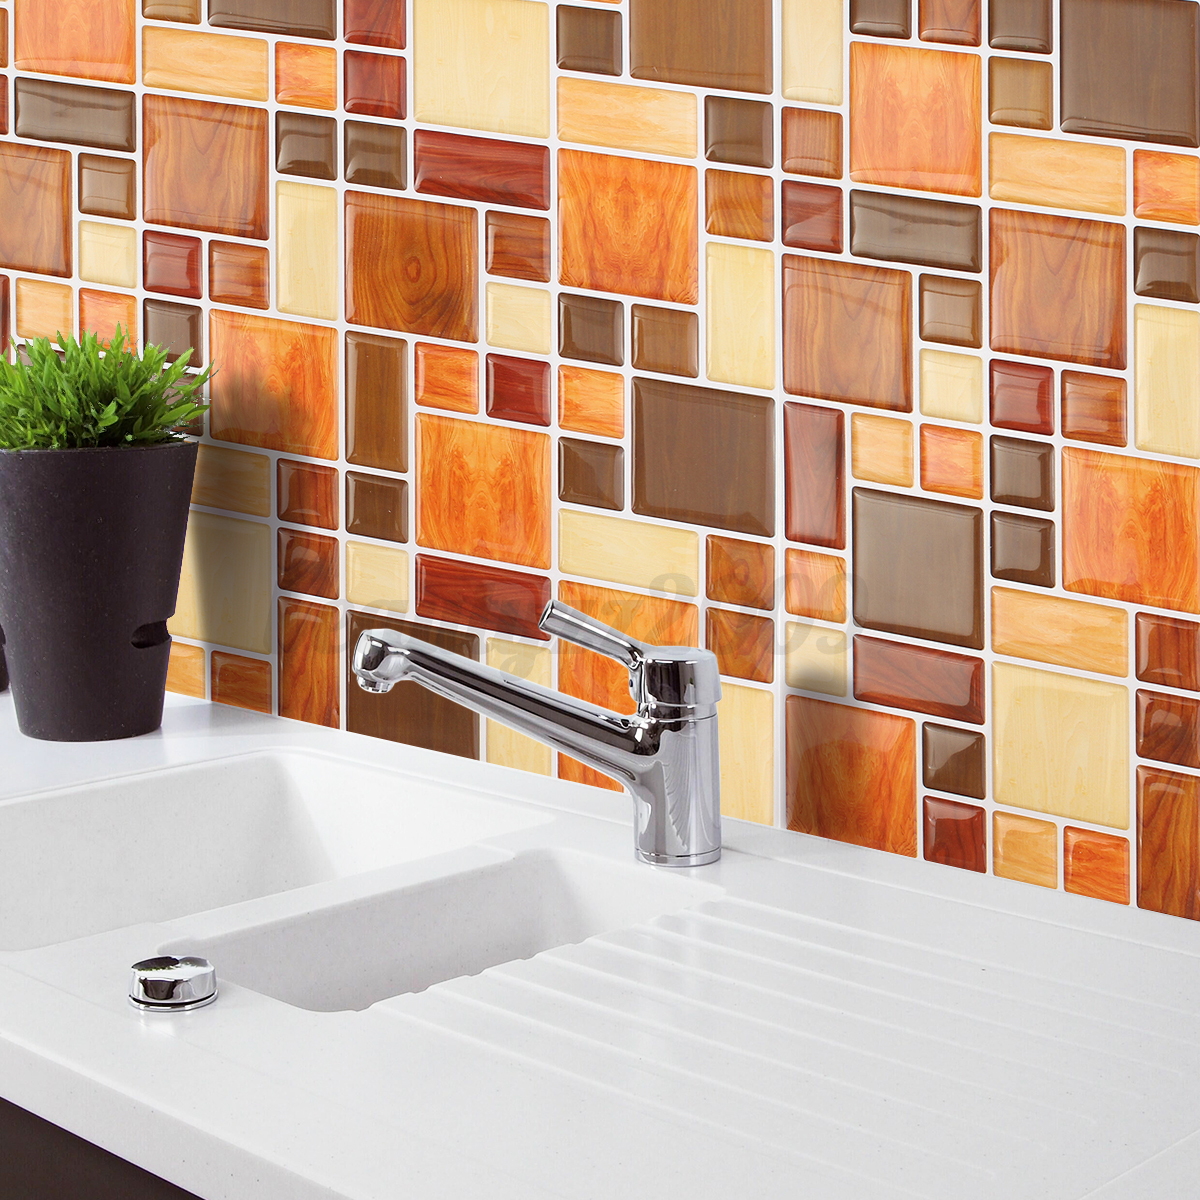 3d brick effect wall sticker tile brick self adhesive for 3d tiles for kitchen wall